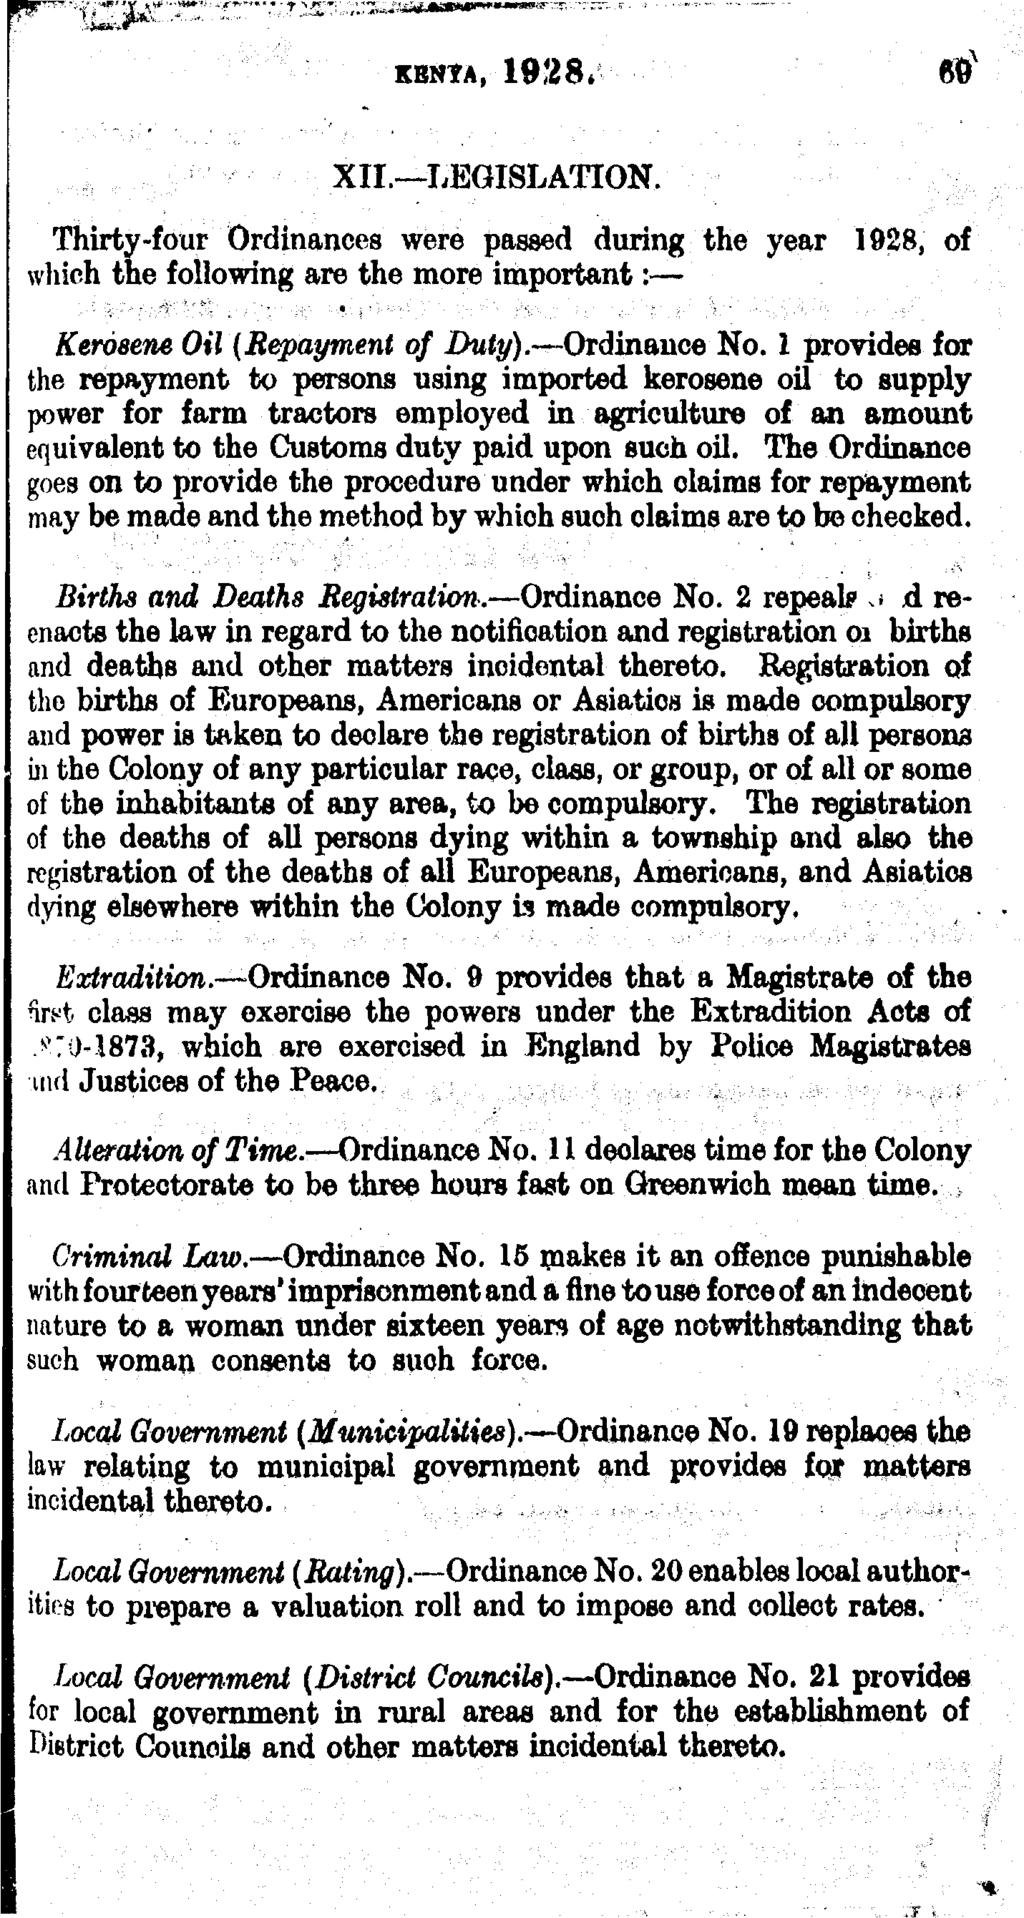 kenta, 1928* e x XII. LEGISLATION. Thirty-four Ordinances were passed during the year 1028, of which the following are the more important: Kerosene Oil (Repayment of Duty). Ordinance No.